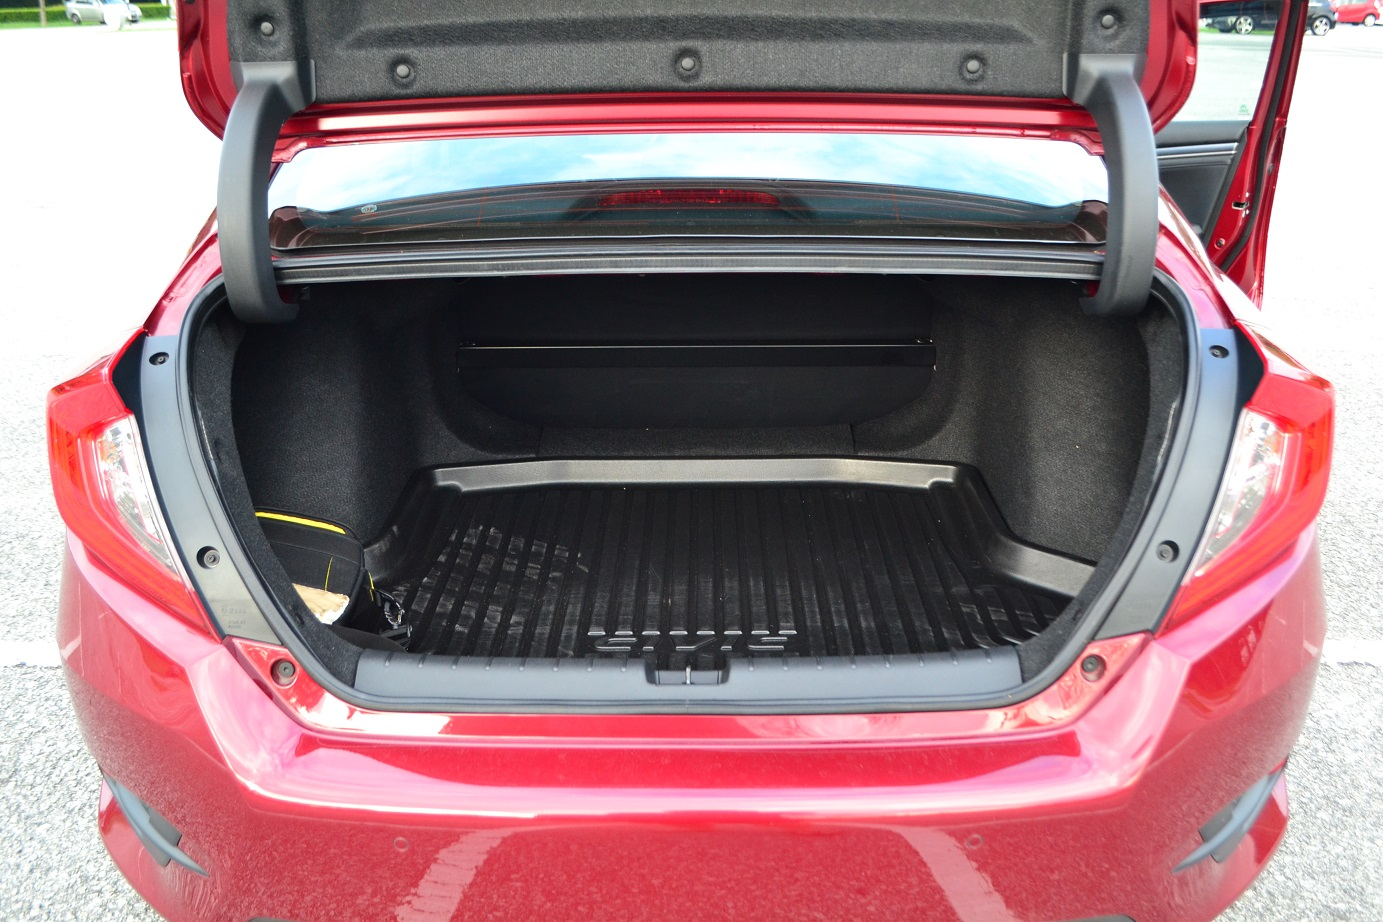 The New Honda Civic Riding Dream Kensomuse Blinker Switch Missing Forum One Drawback Of Is Rear Seats Cannot Be Folded So 519litres All Youll Get At Back Here Black Crossbar You See Partially